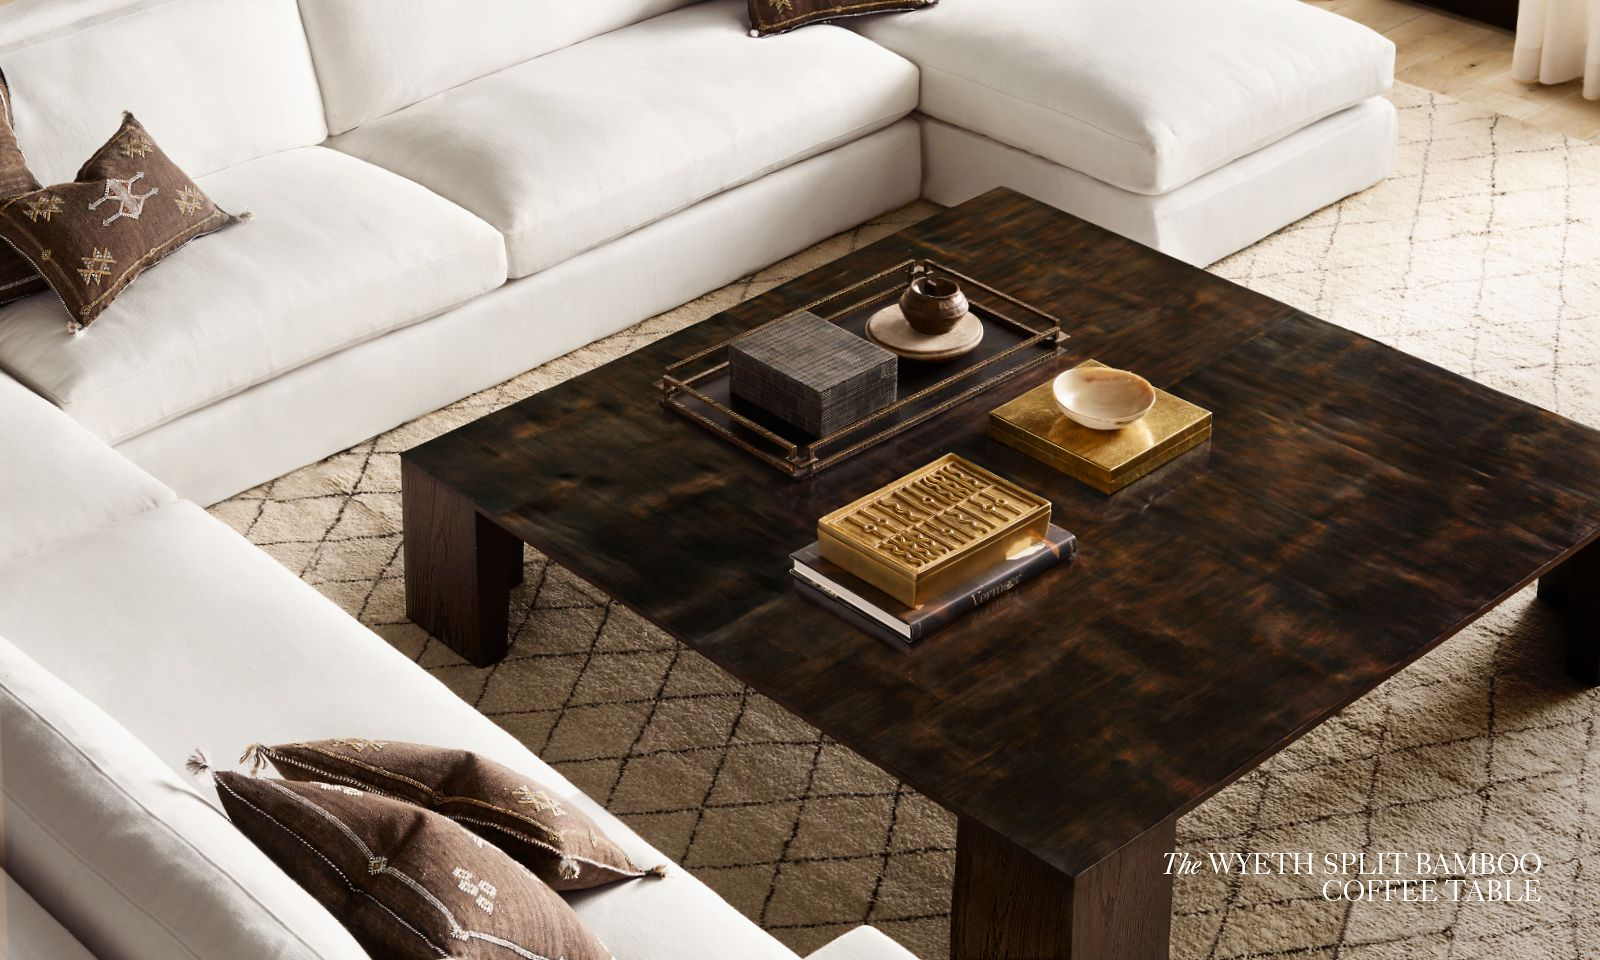 Introducing the Wyeth Split Bamboo Coffee Table